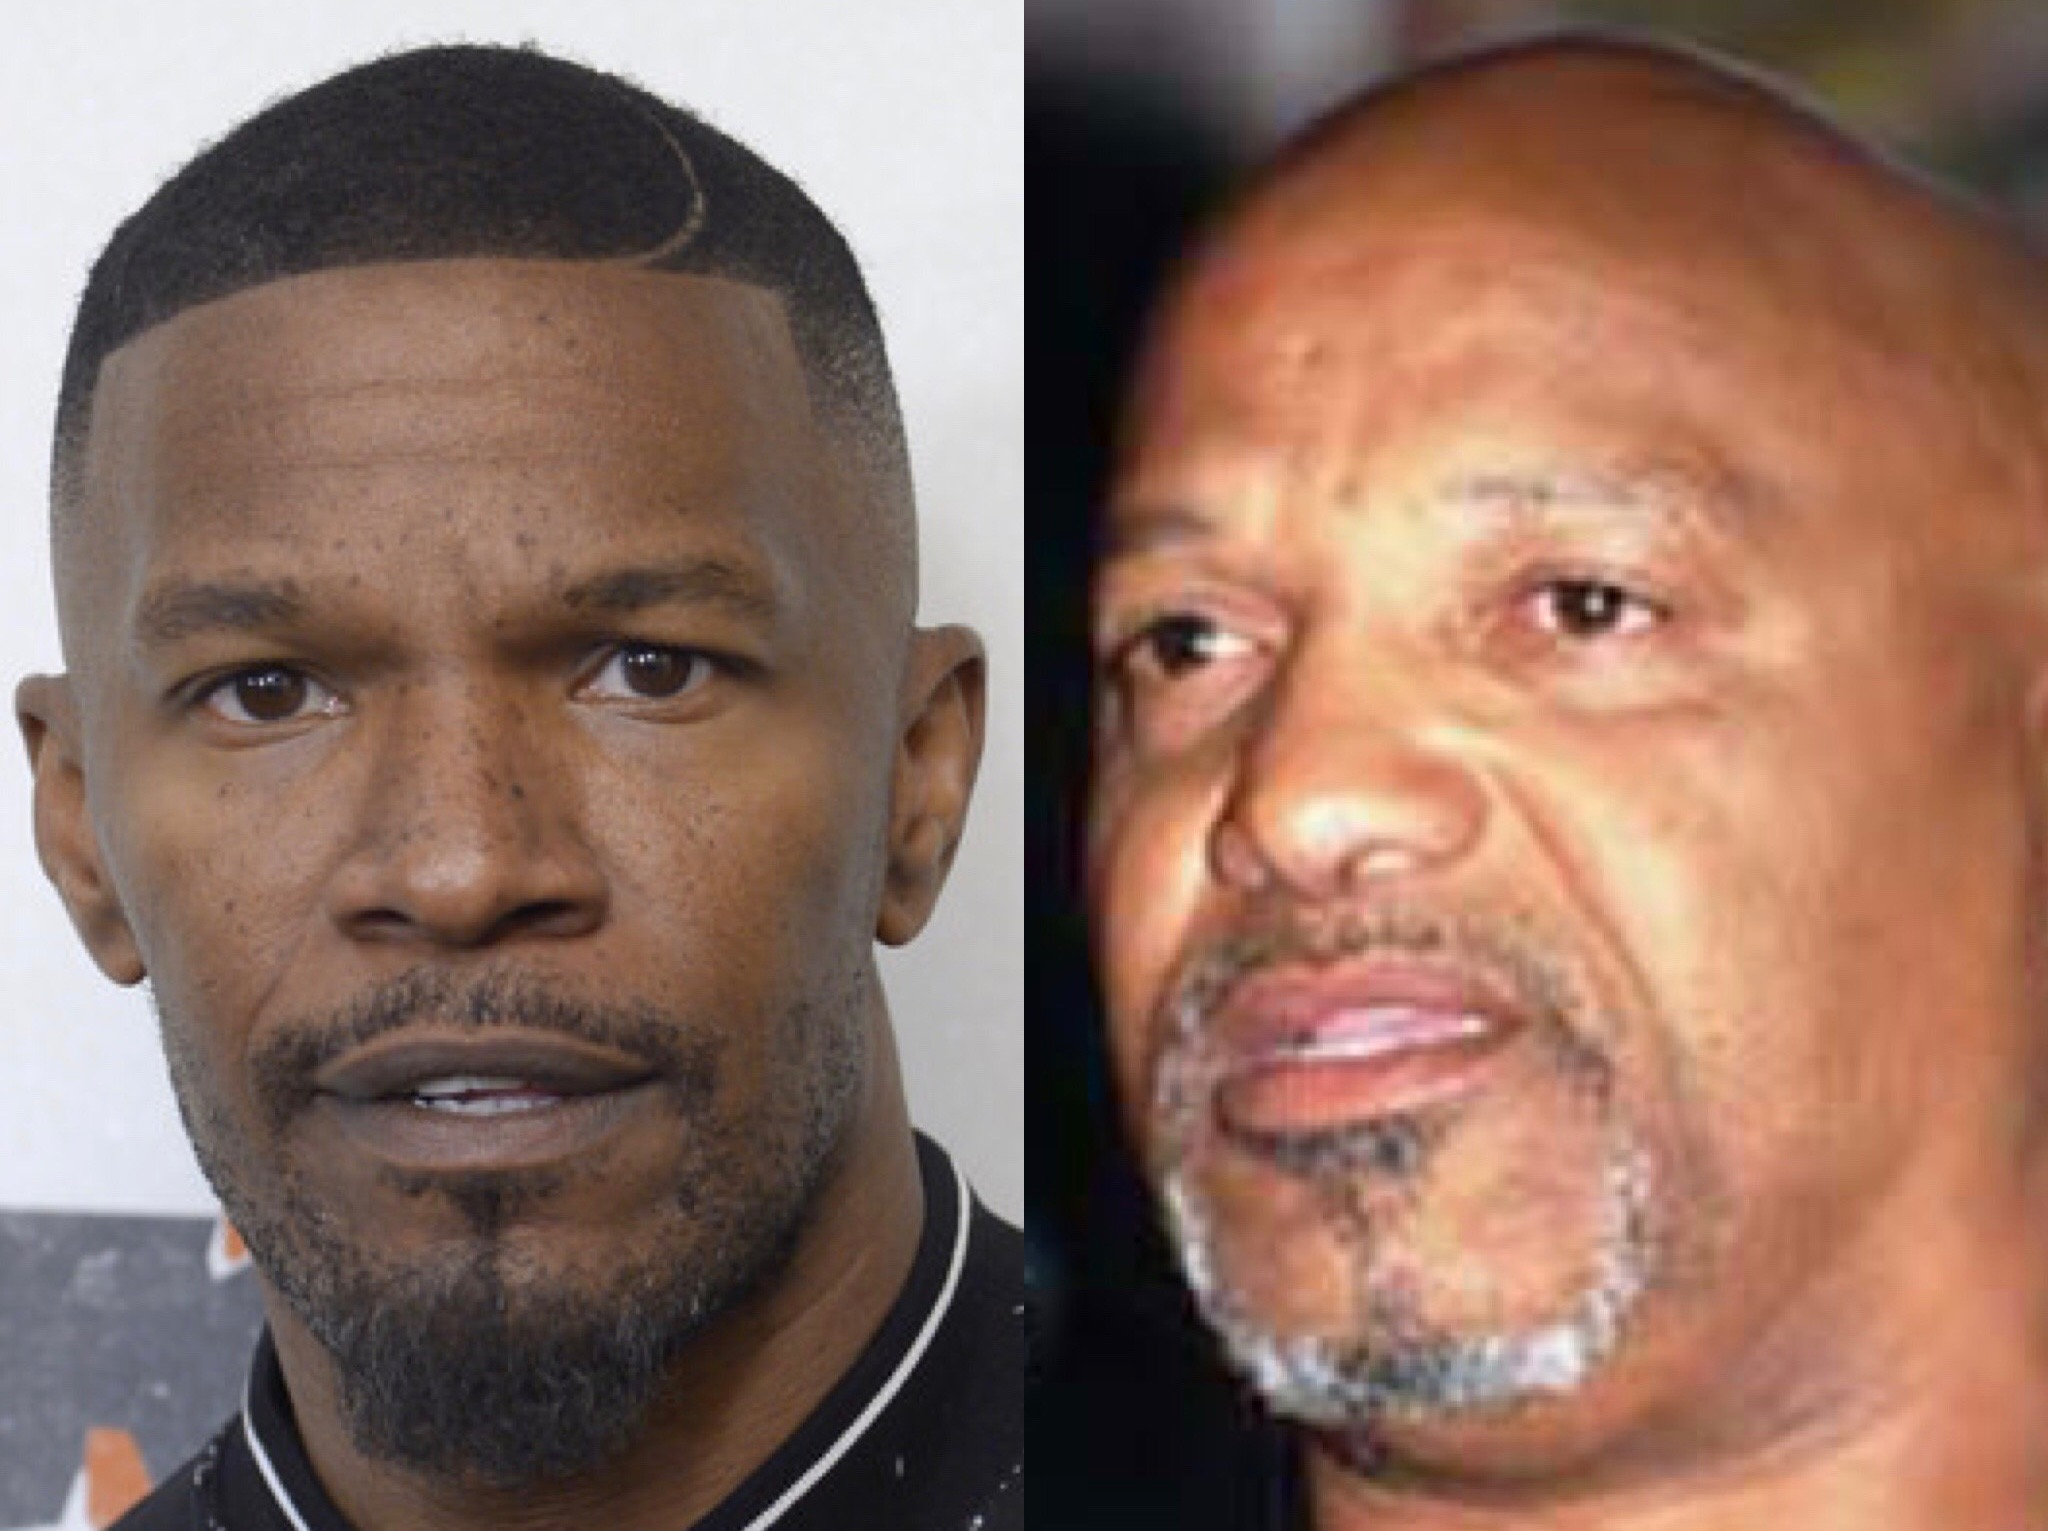 """an analysis of the case of geronimo pratt a former black panther leader In """"signal hill,"""" foxx will play elmer """"geronimo"""" pratt, the former black panther party leader and vietnam vet whom cochran represented in helping to overturn a murder conviction that sent pratt to prison for 27."""